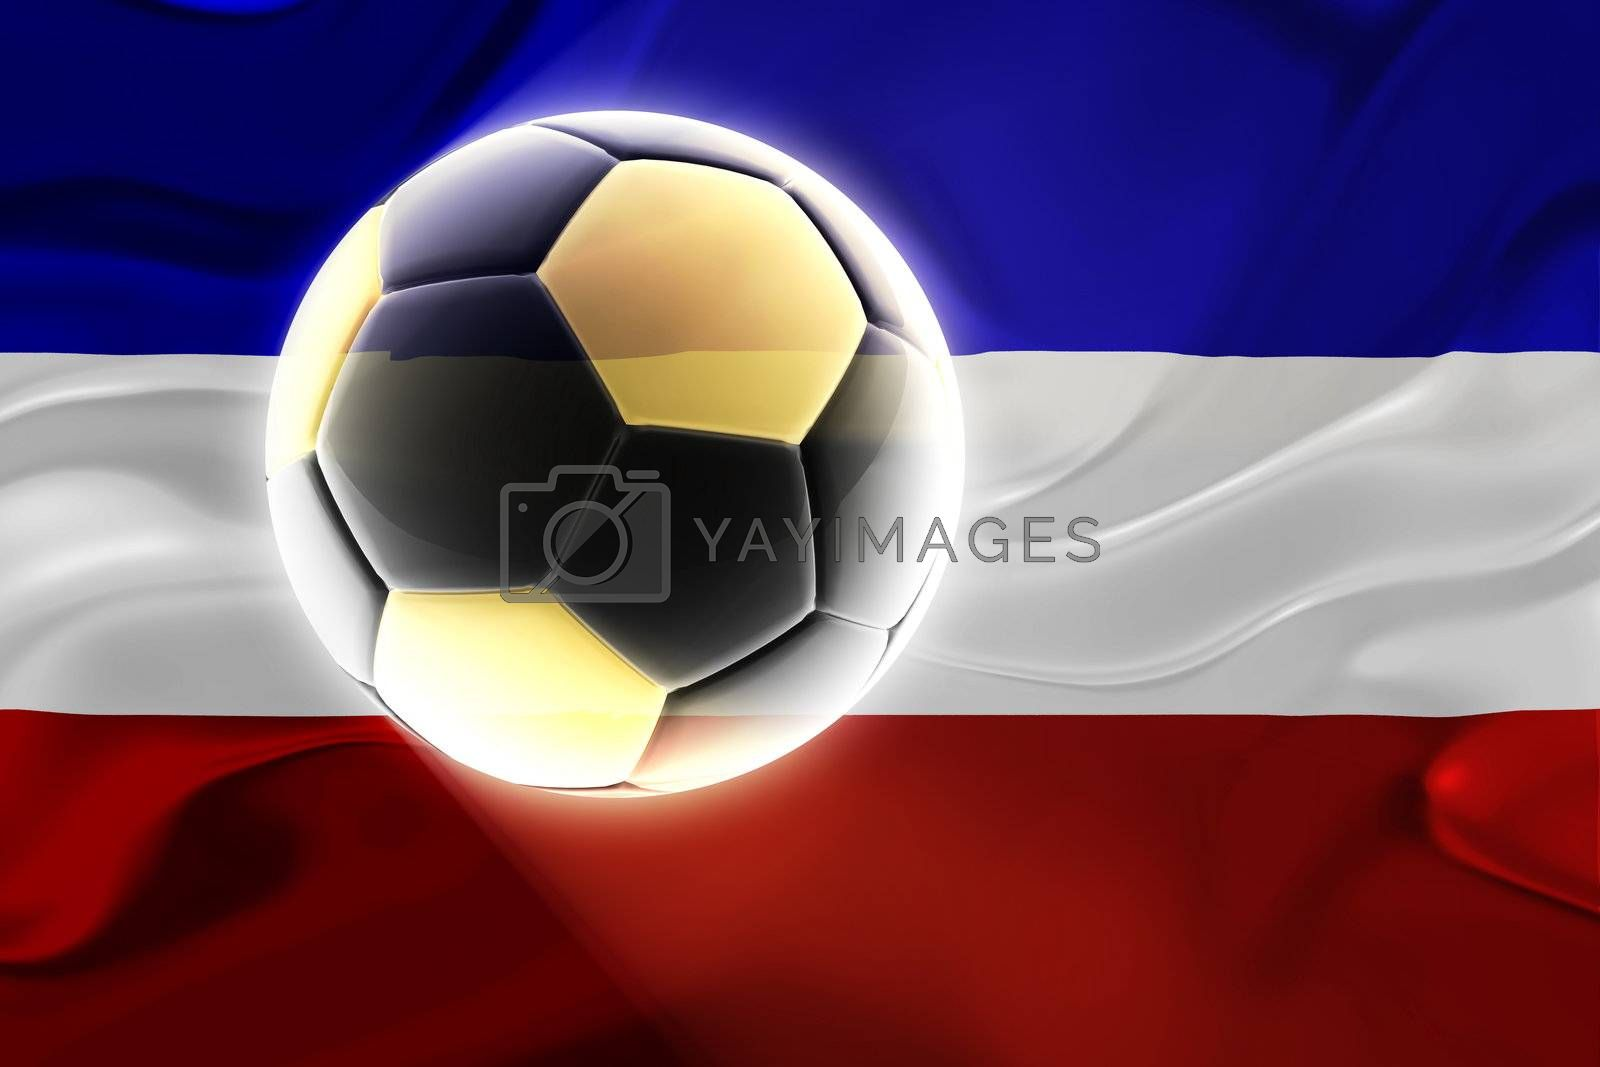 Flag of Serbia and Montenegro, national country symbol illustration wavy fabric sports soccer football